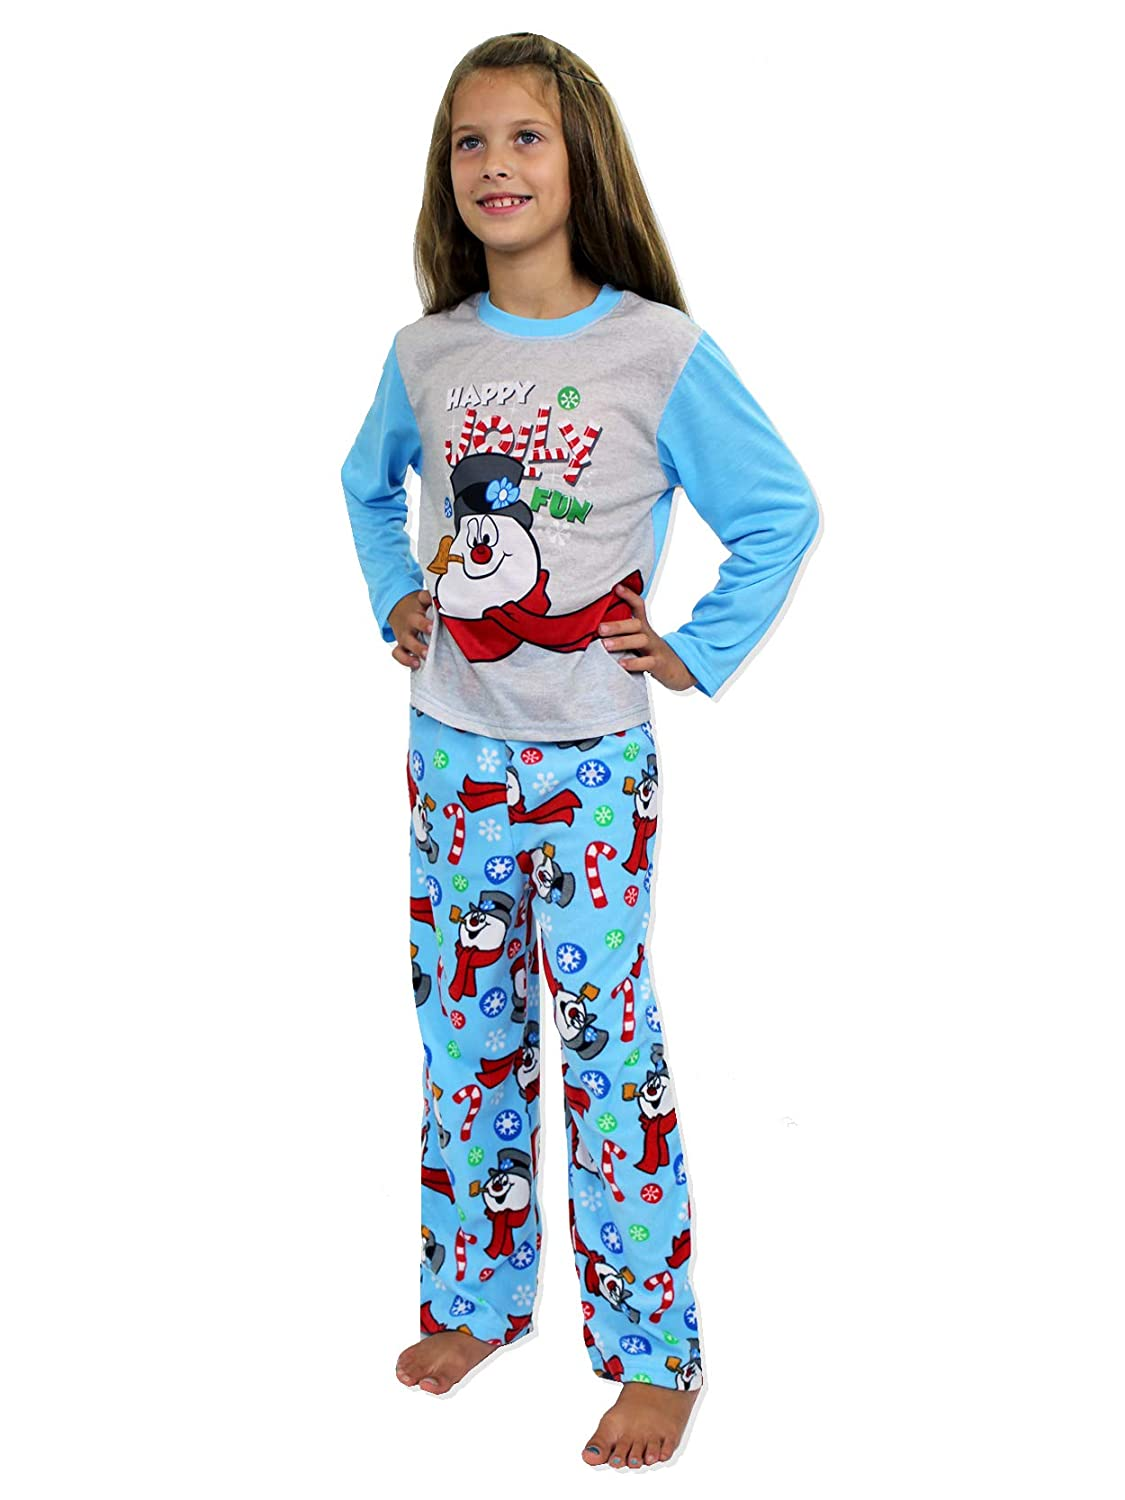 Frosty the Snowman Christmas Holiday Family Sleepwear Pajamas (Adult/Kid/Toddler) manufacturer